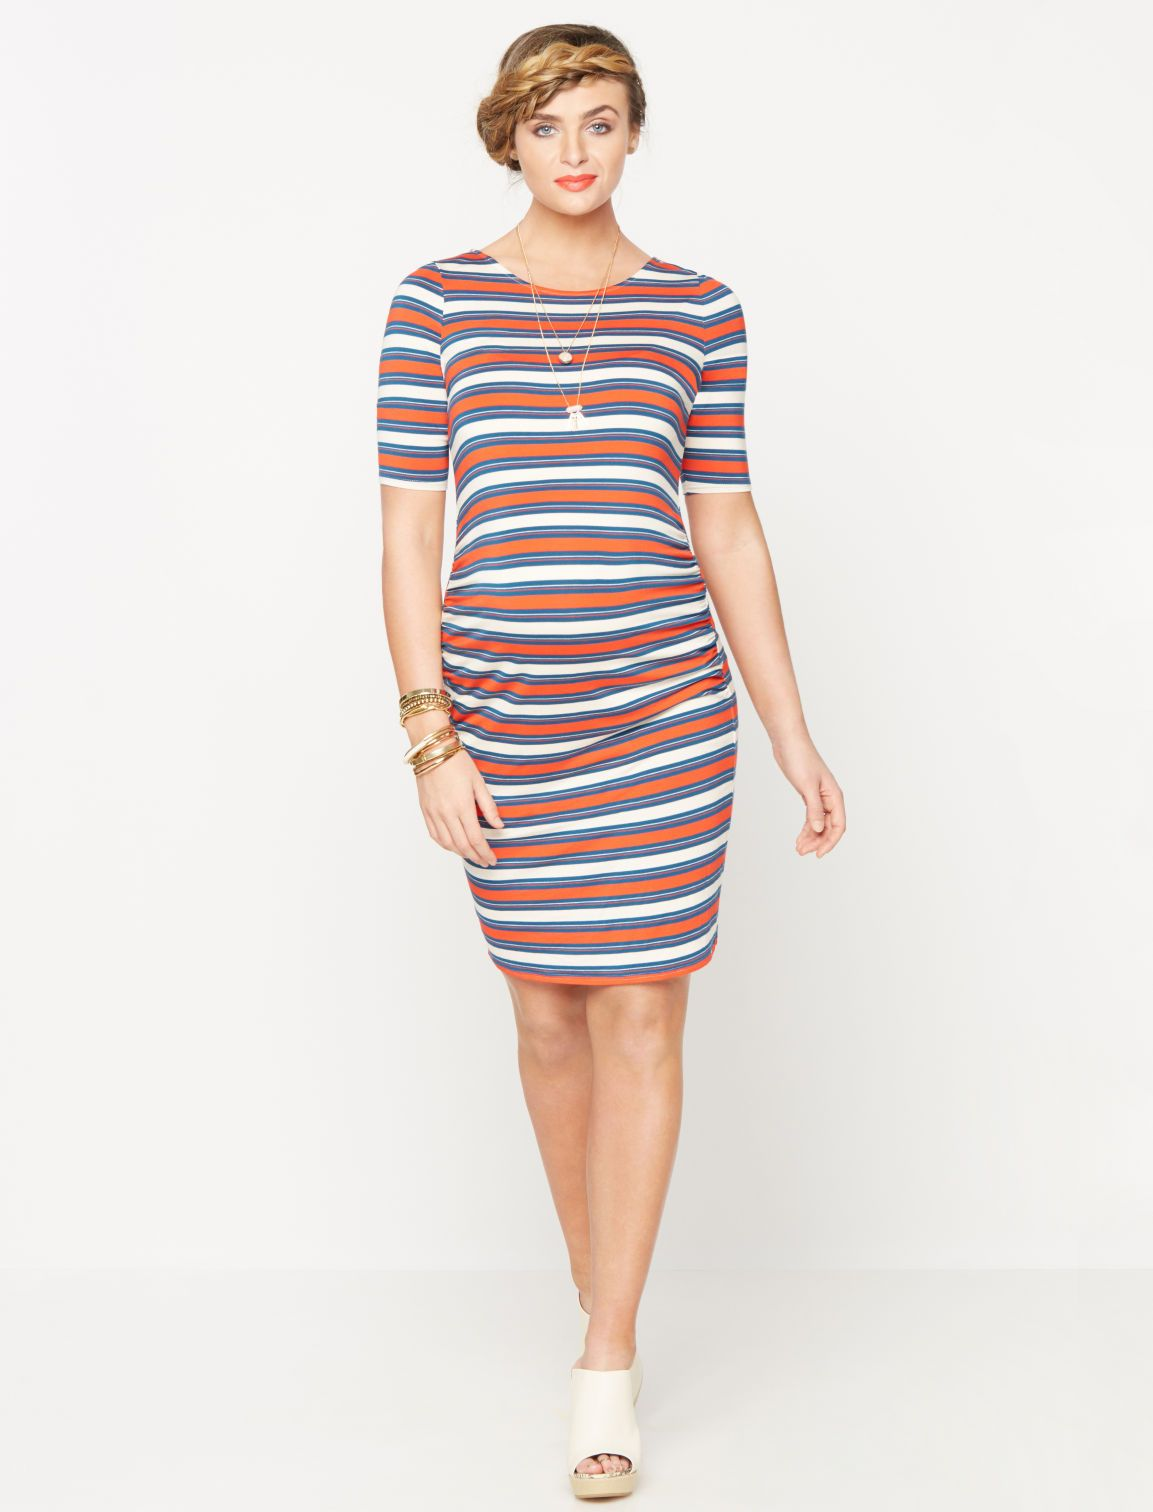 Rachel zoe 34 sleeve back interest maternity dress rachel zoe find this pin and more on rachel zoe maternity collection exclusively for a pea in the pod ombrellifo Gallery